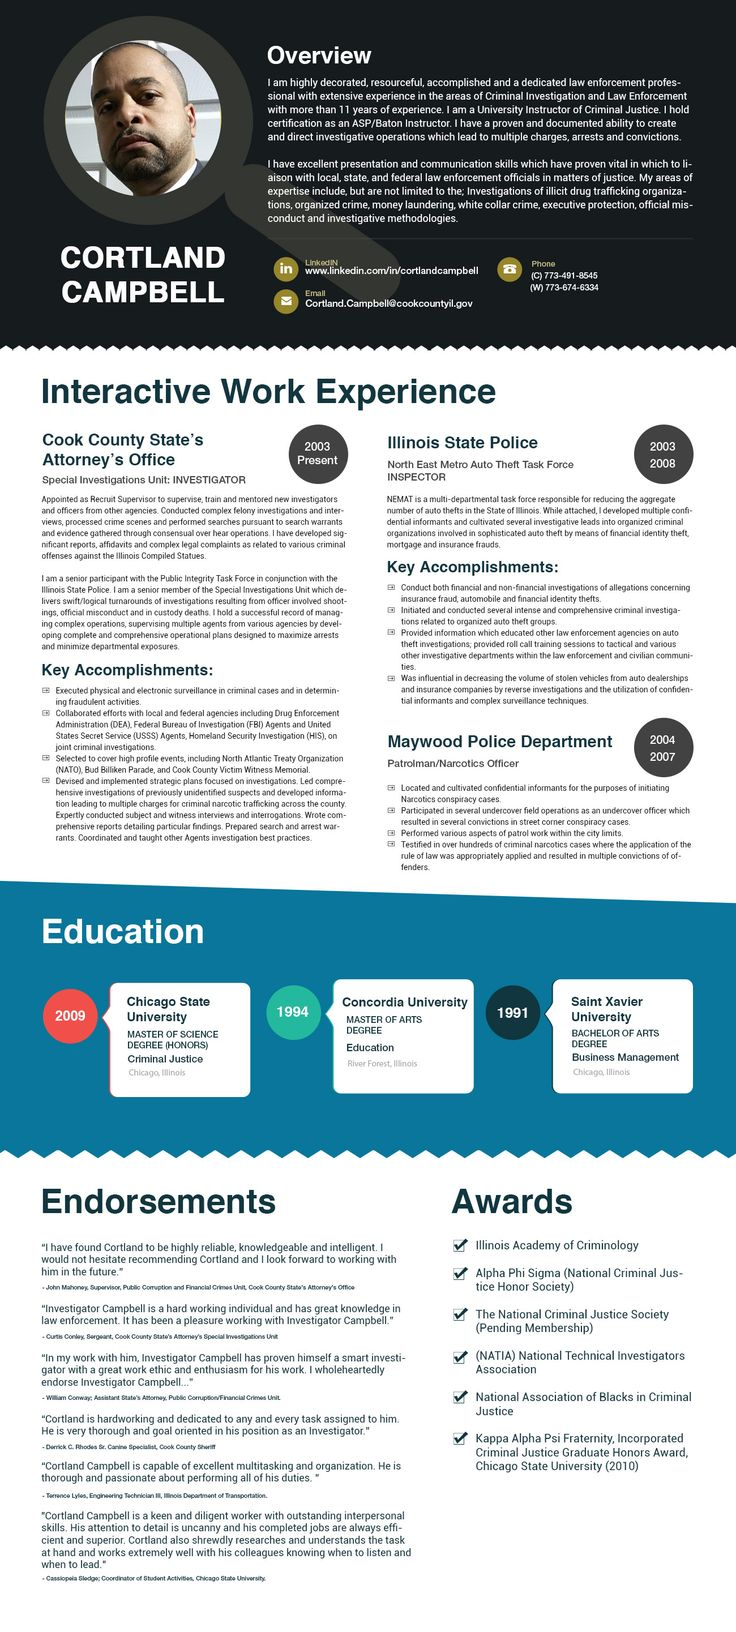 #Infographic #resume Cortland Campbell is highly decorated, resourceful, accomplished and a dedicated law enforcement professional with extensive experience in the areas of Criminal Investigation and Law Enforcement with more than 11 years of experience.